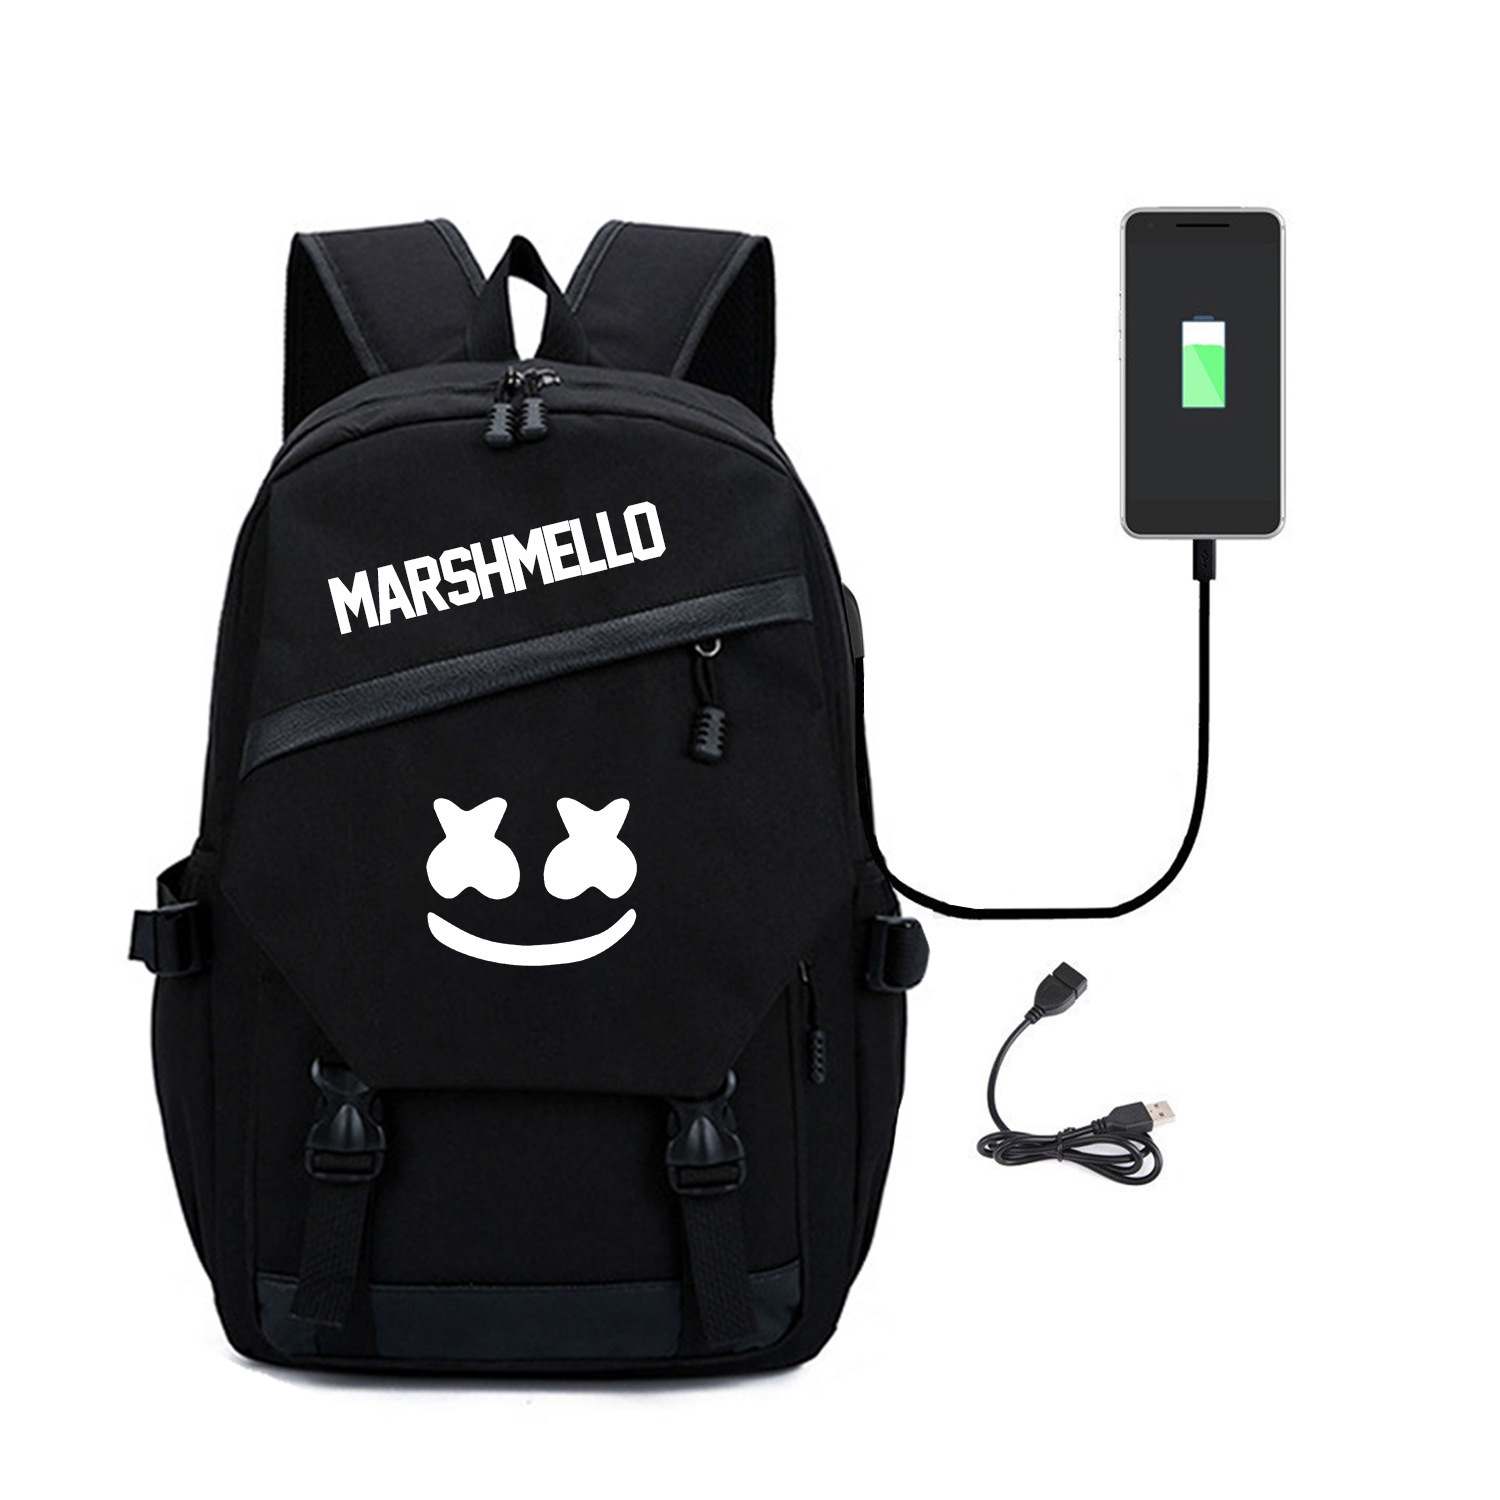 fb01794e1b30 Marshmallow Backpack Electric Sound DJ Student Backpack Women With USB  Charging Port Bag For Laptop Canvas Bag Merchandis